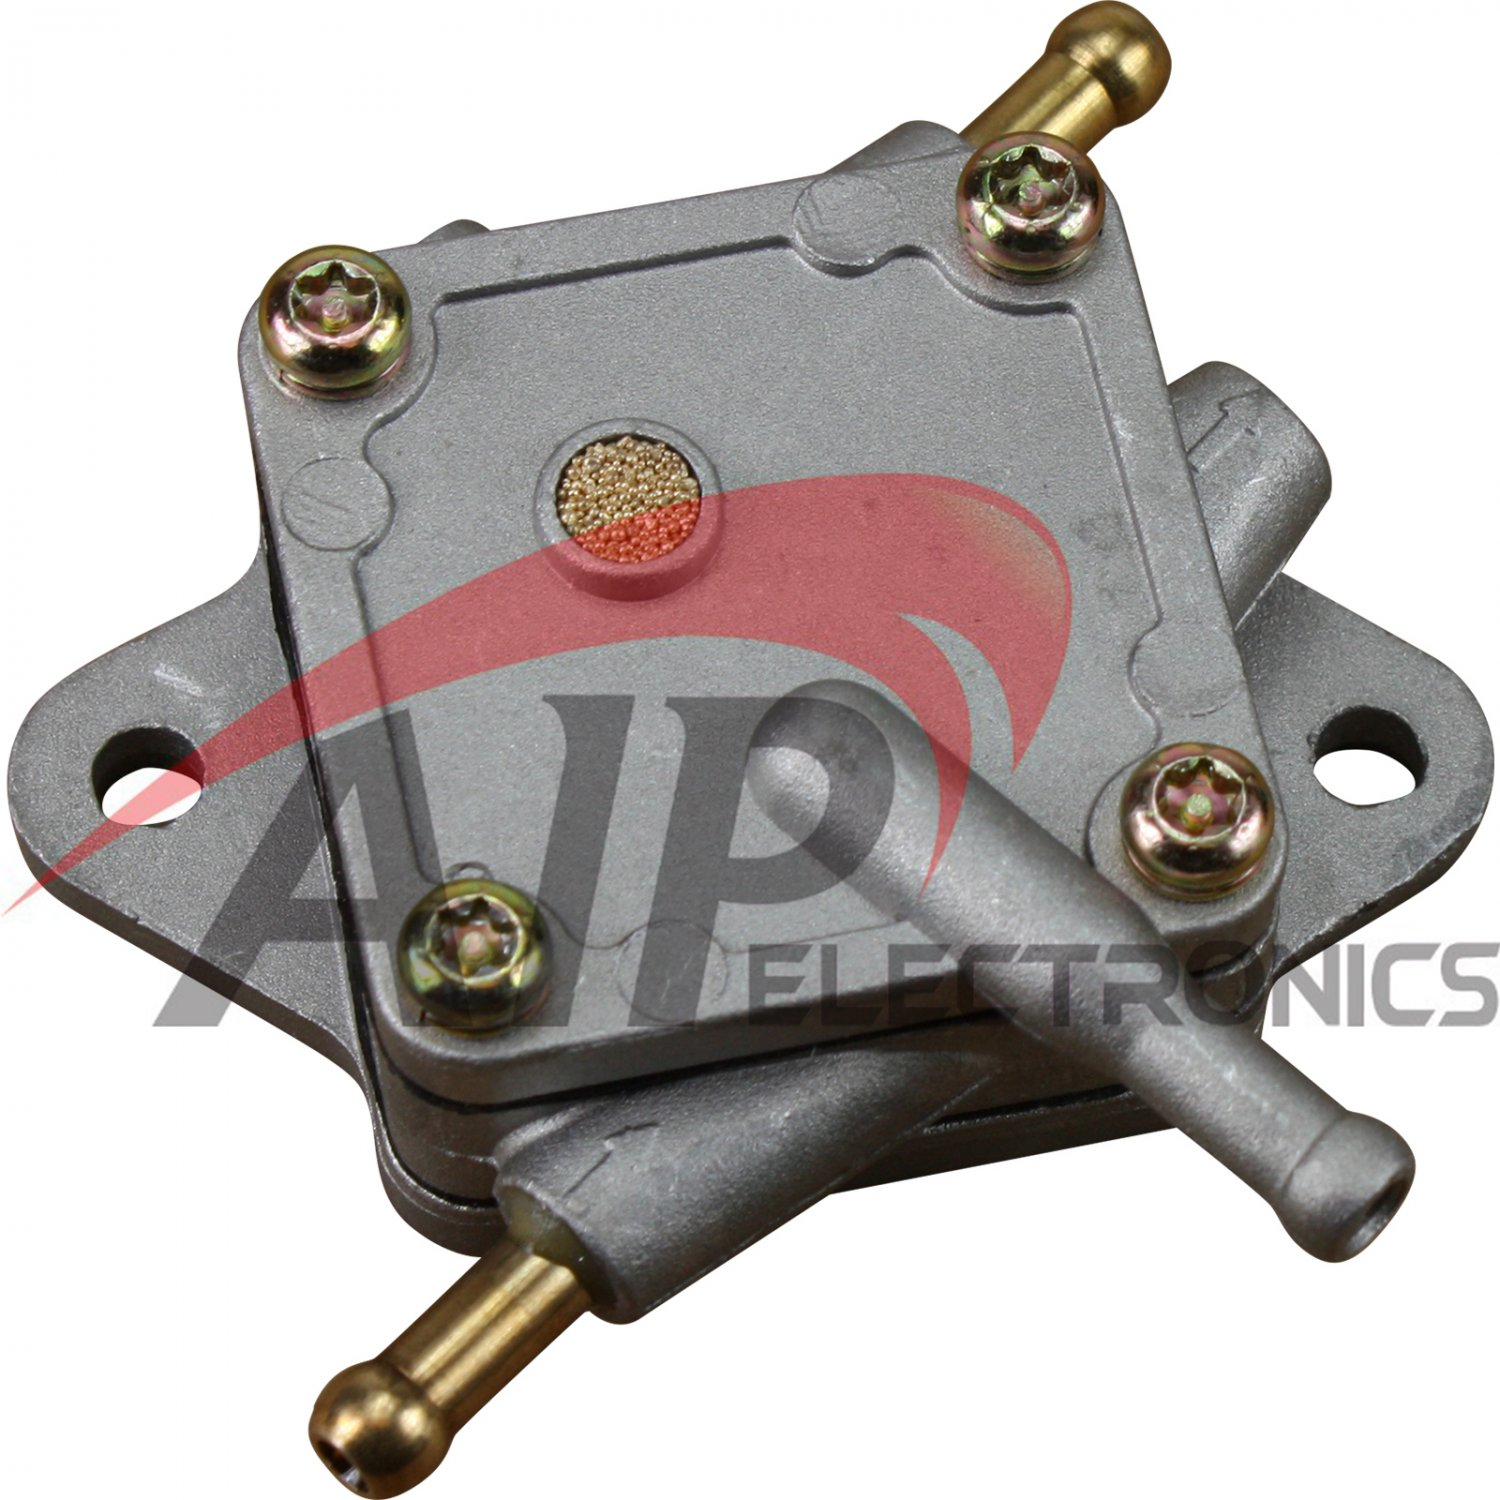 Brand New Fuel Pump Fits Yamaha Golf Cart G16 G20 G22 4-Cycle 1996-UP JN6-F4410-00 Oem Fit FP501